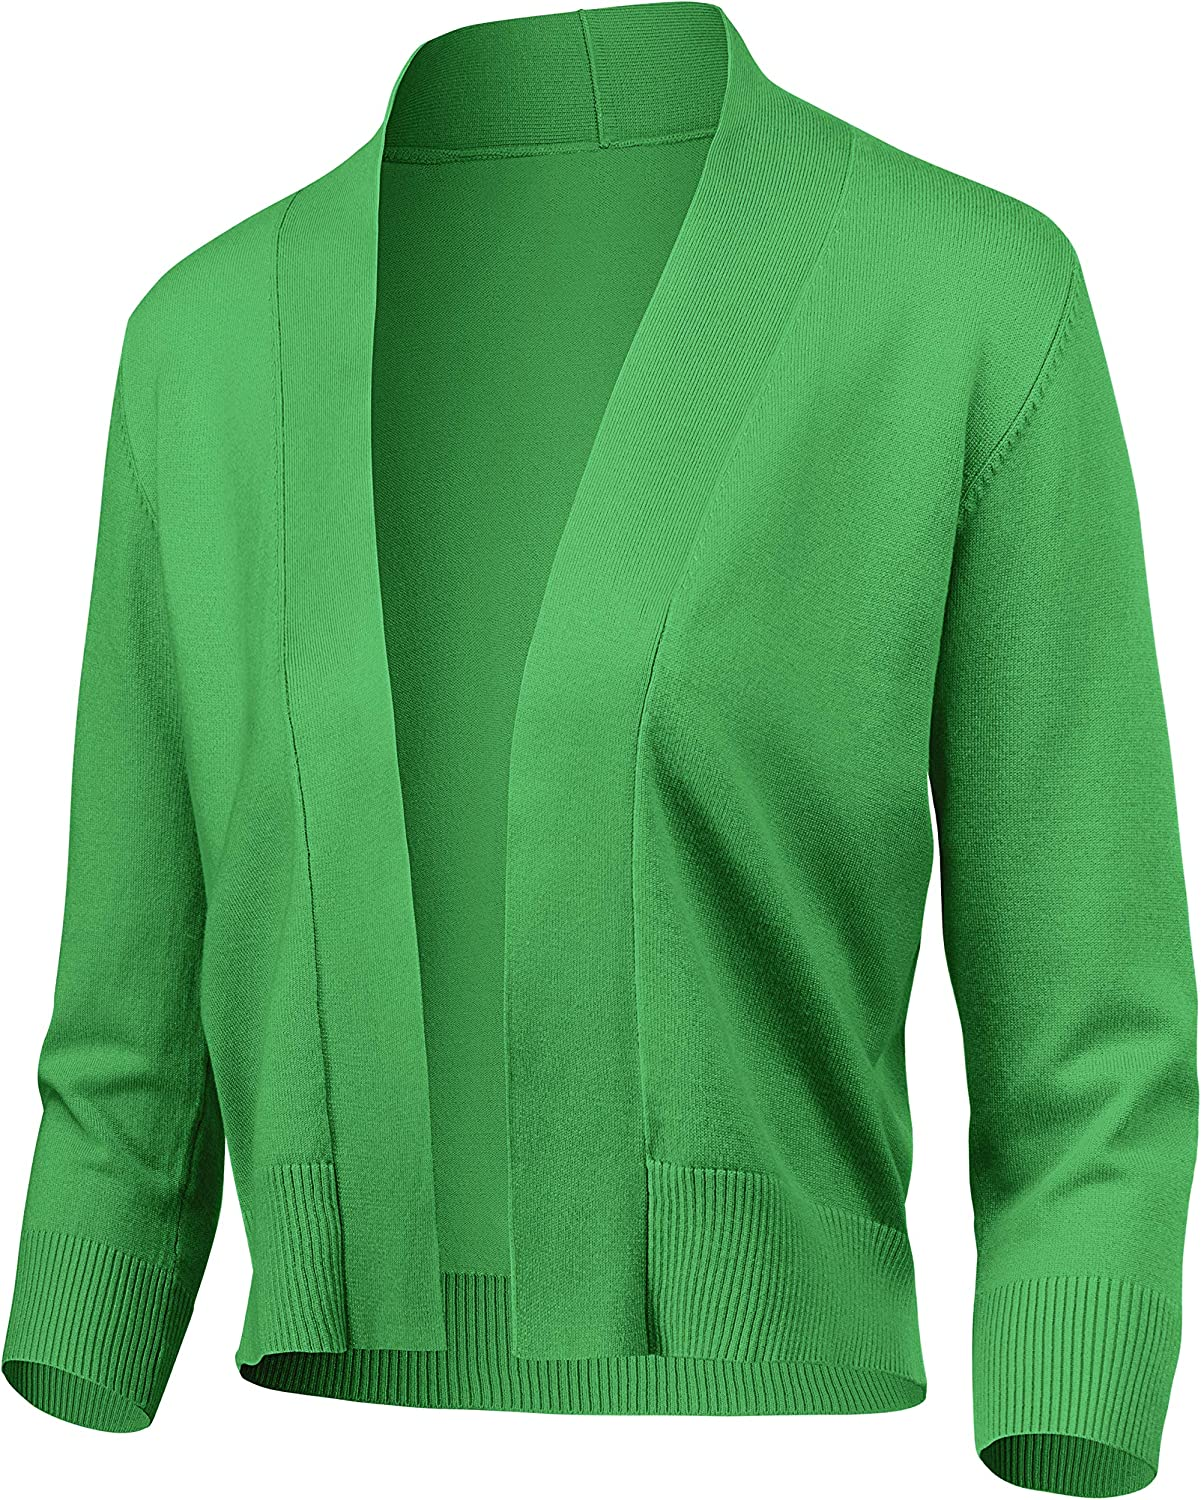 Women's Classic 3 4 Sleeve Open Cardigan Front Bolero Ranking TOP19 Cropped S 2021new shipping free shipping